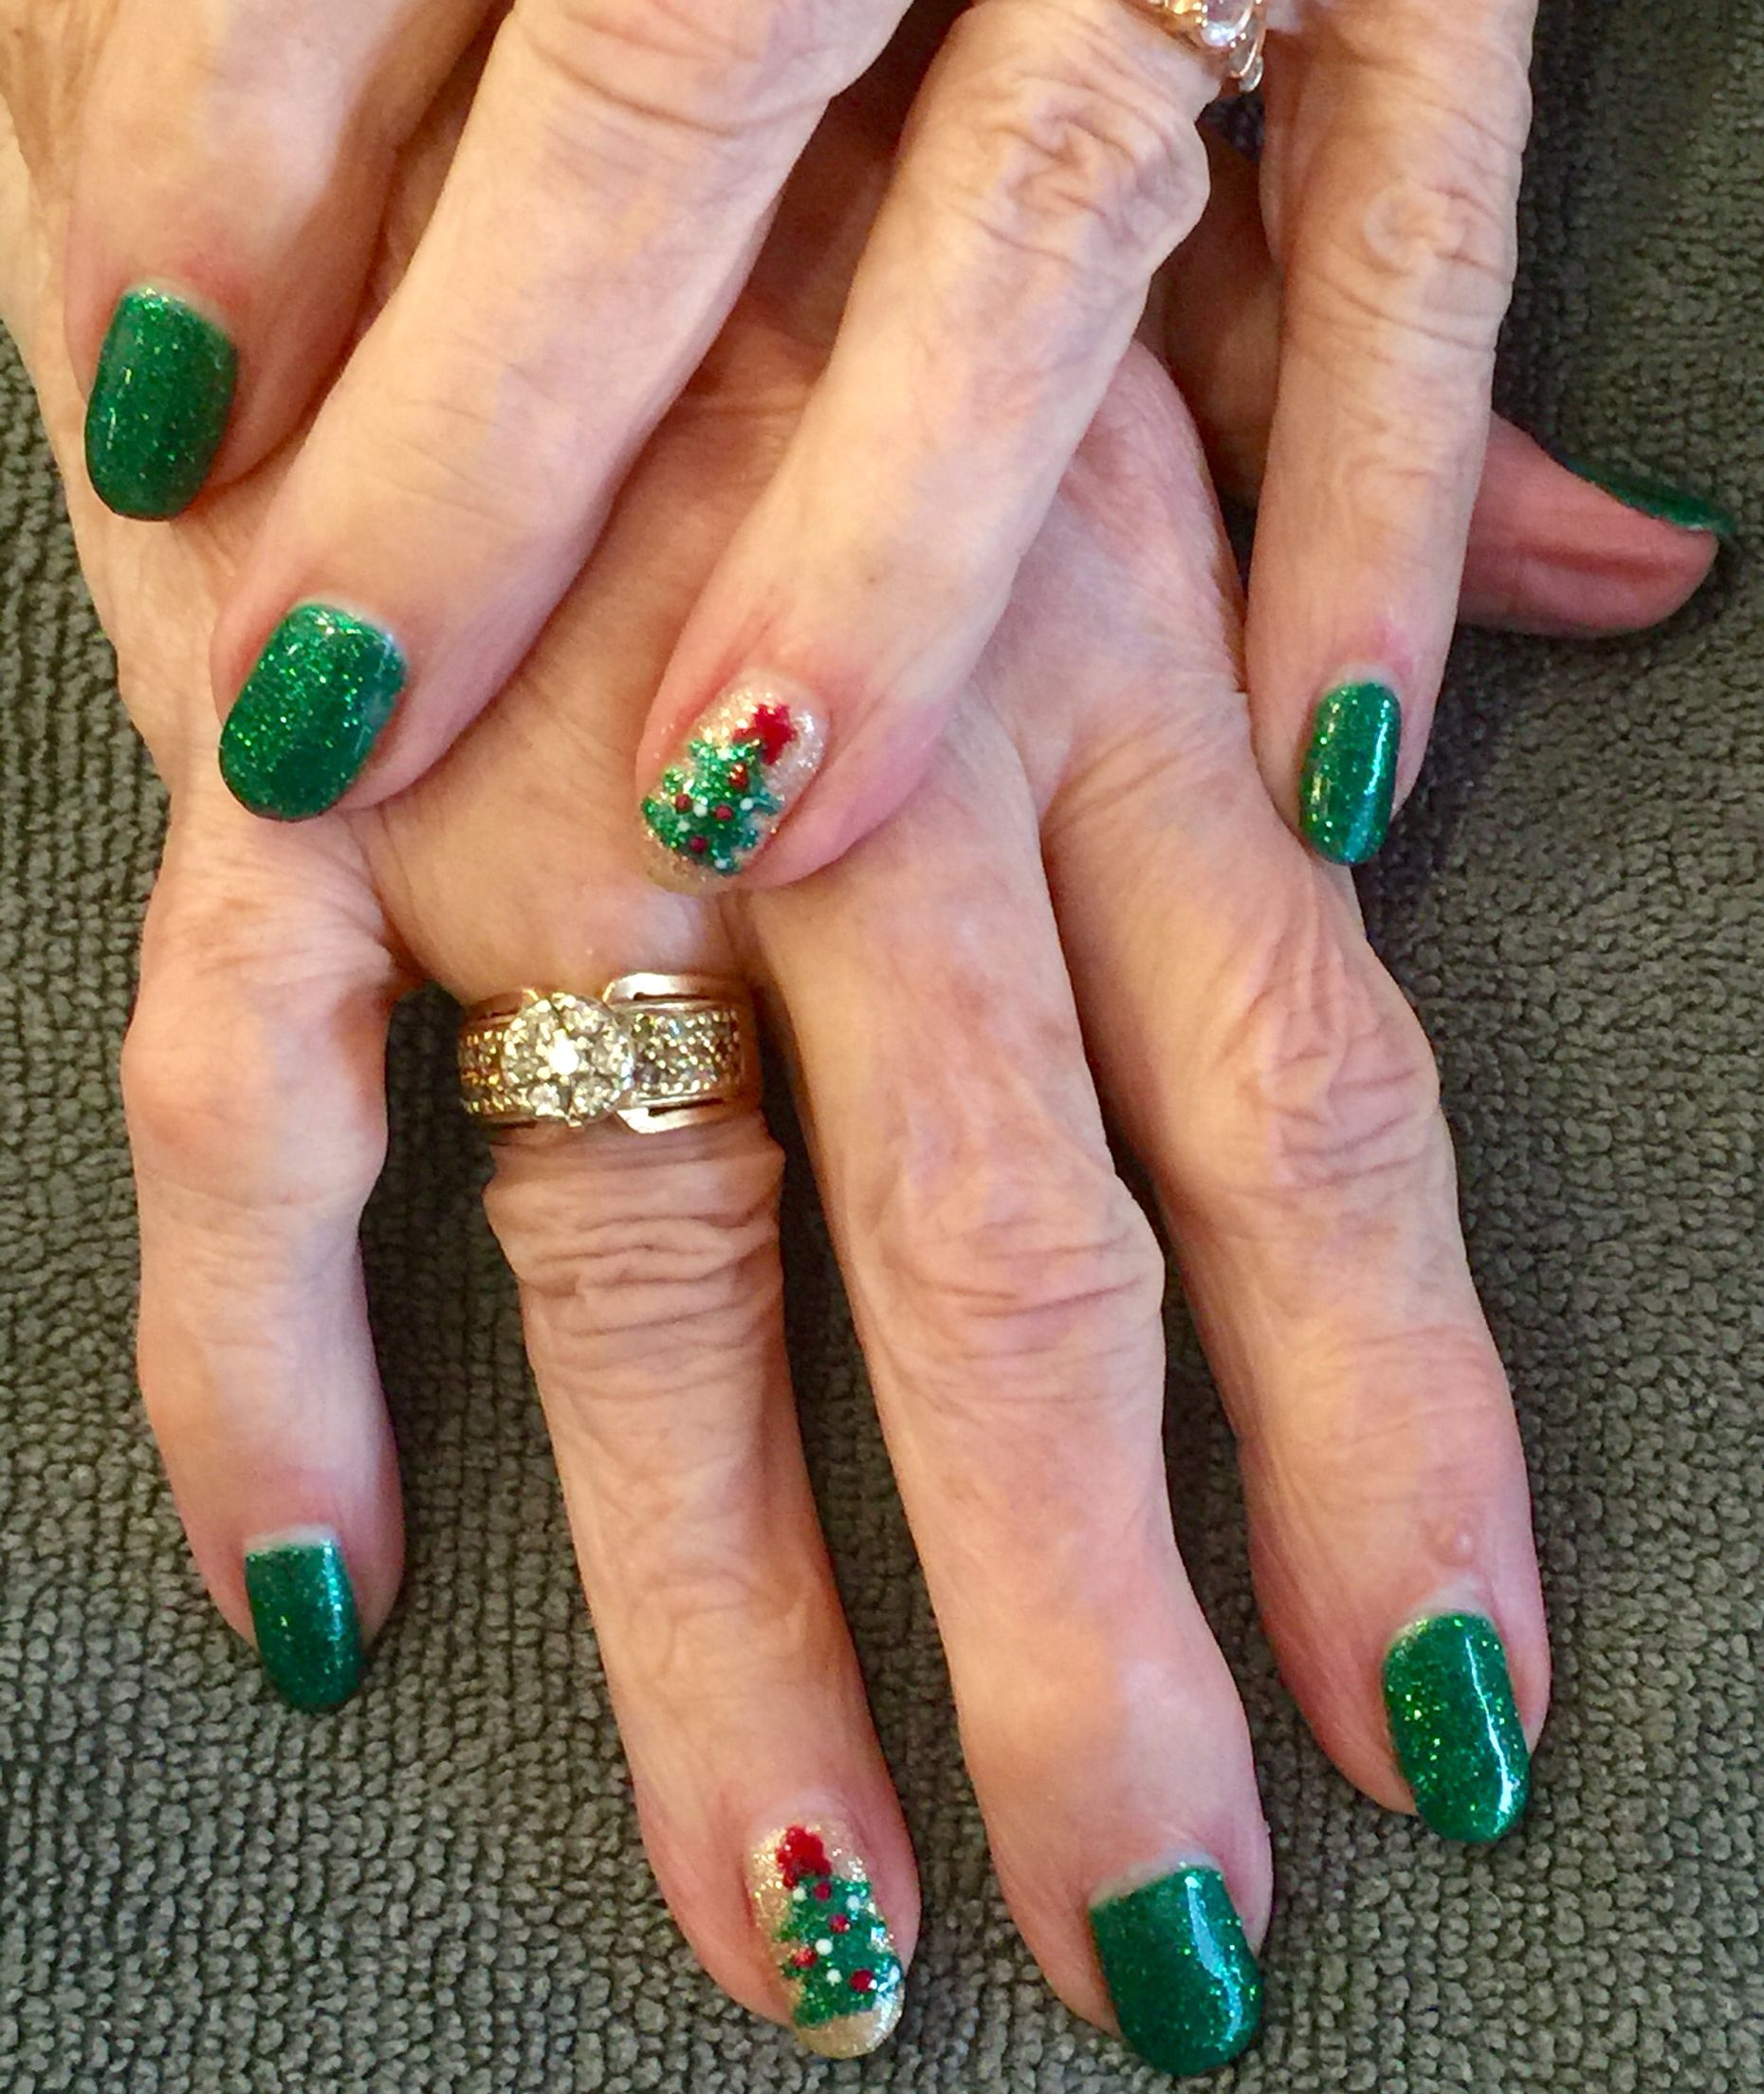 Love this festive gel manicure! 85 years young and still fancy ...